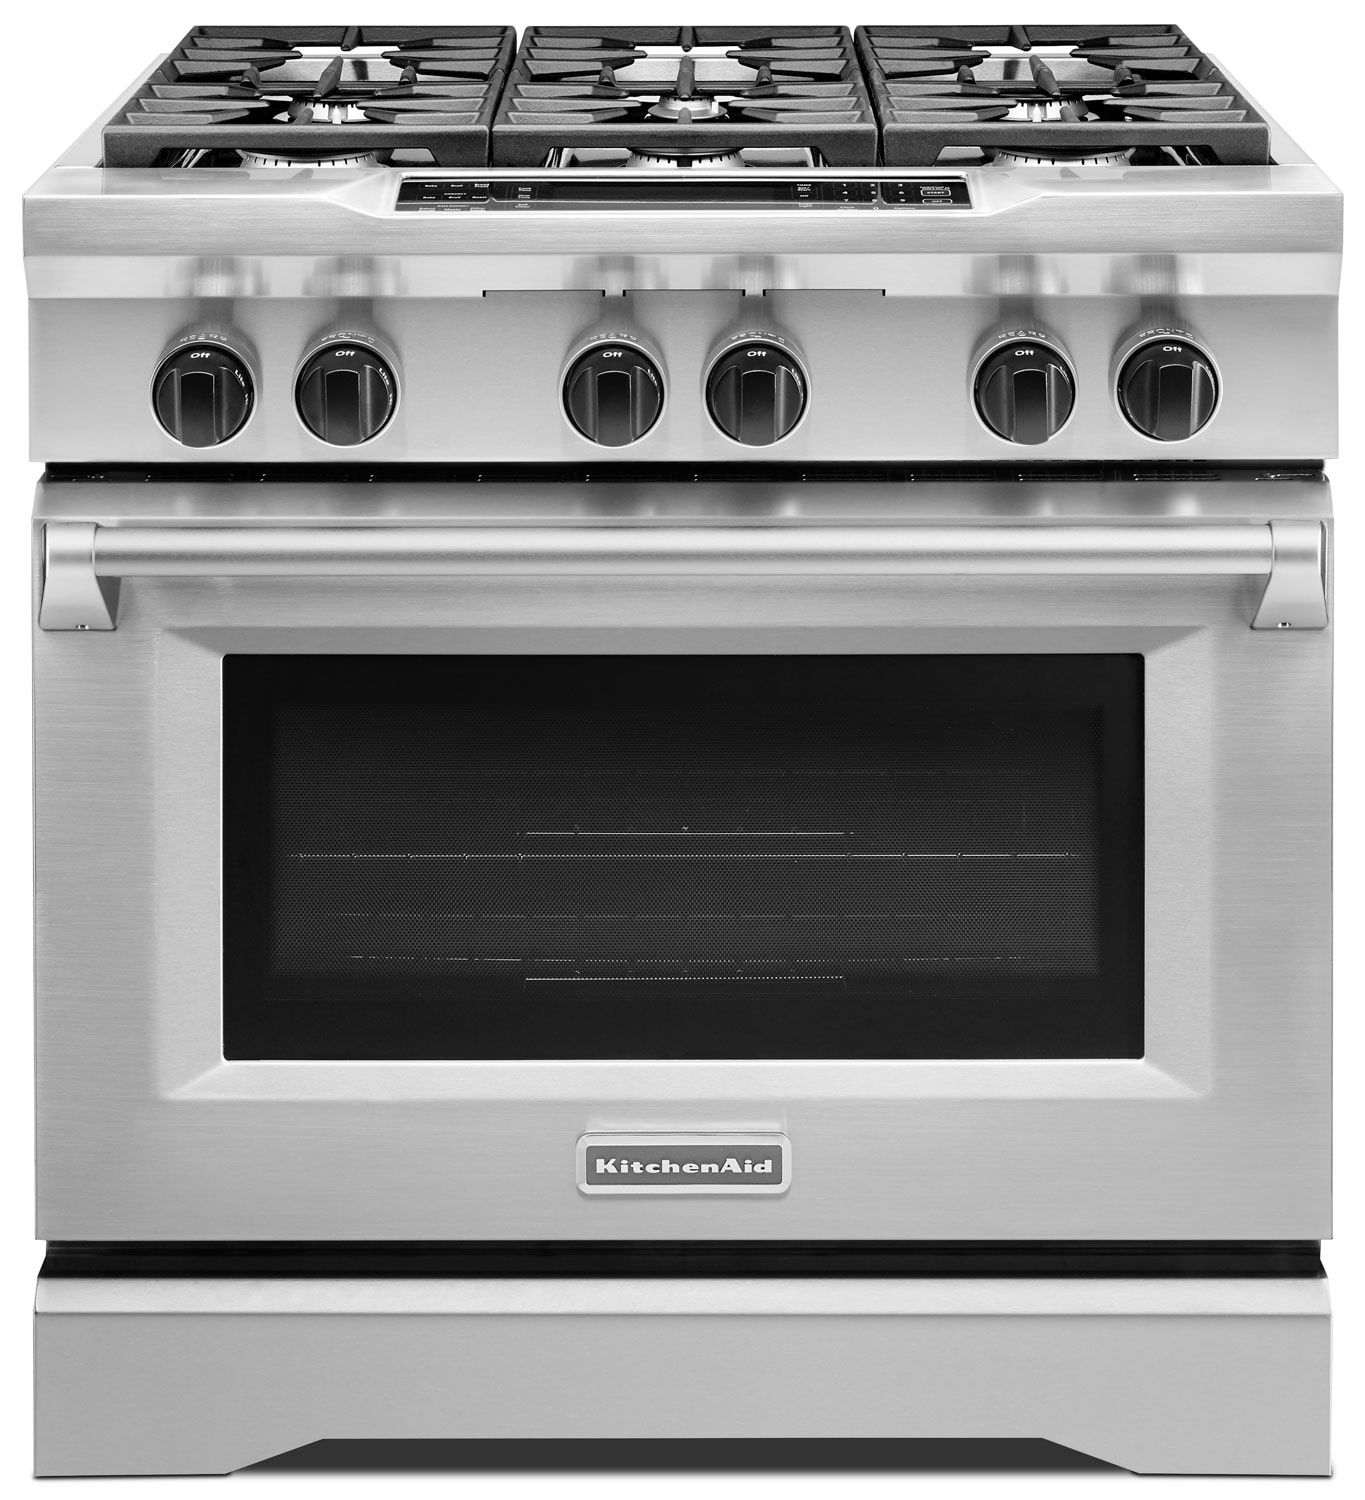 Kitchenaid Black Stainless Package: KitchenAid Stainless Steel Freestanding Dual Fuel Range (5